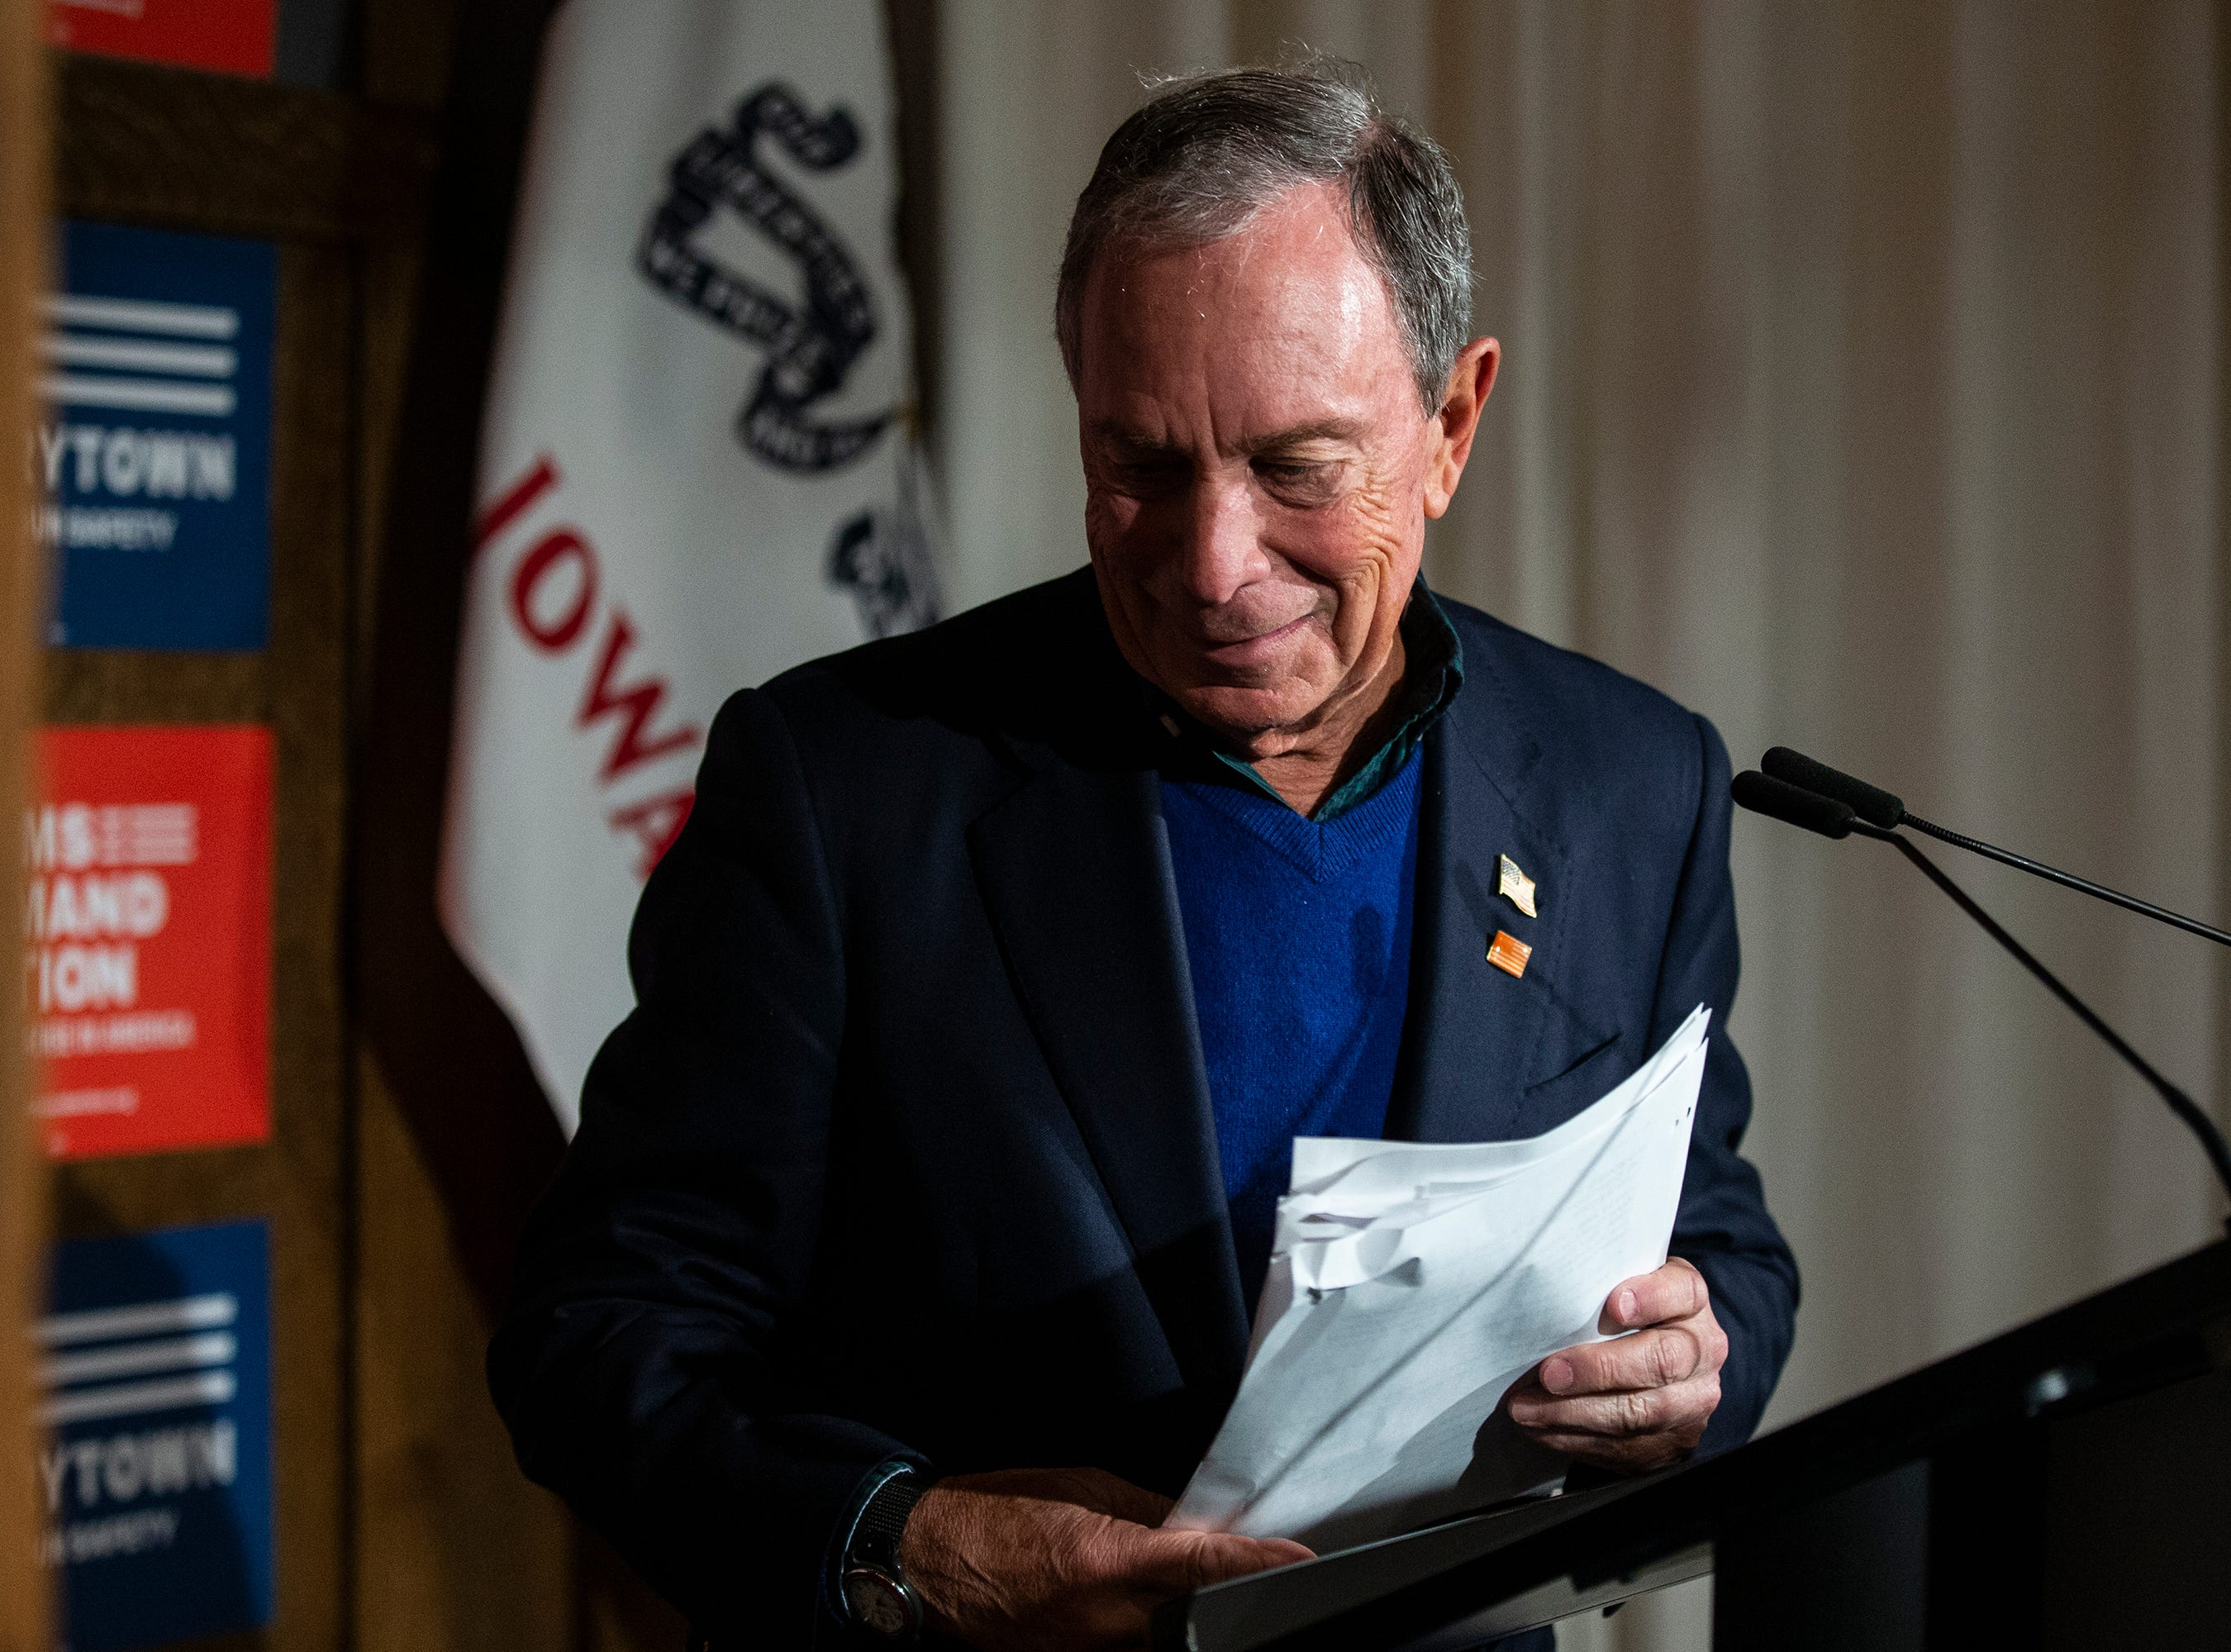 Former New York City Mayor Michael Bloomberg leaves the stage after speaking to the crowd gathered at an Iowa Moms Demand Action member meeting on Tuesday, Dec. 4, 2018, at the Iowa Taproom in Des Moines.